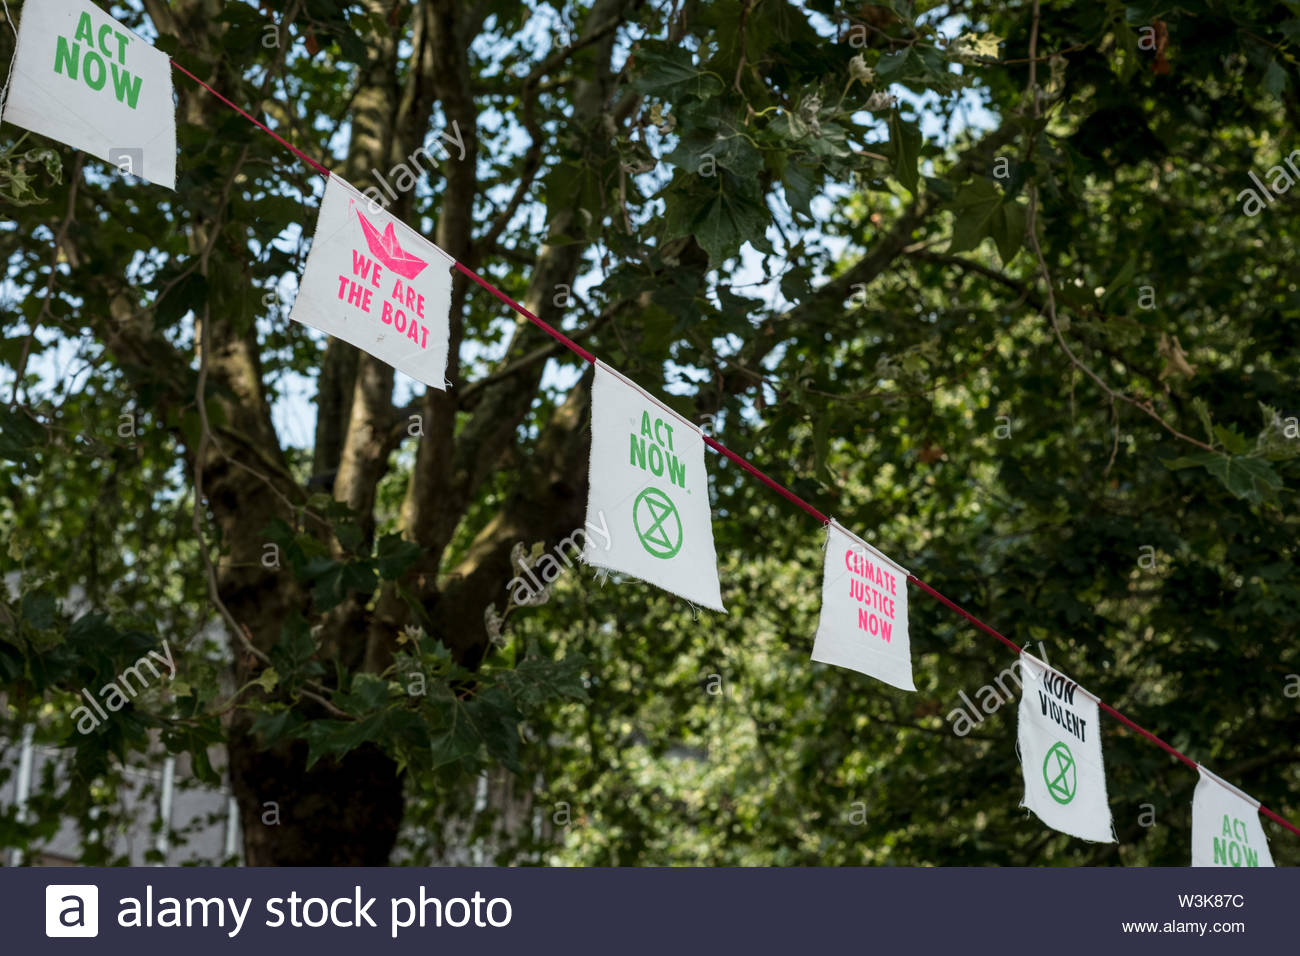 Bristol, United Kingdom - 16 July 2019: Extinction Rebellion banners and flags are strung up in the trees of Castle Park as protesters take over Bristol city centre for a second day as part of their Summer Uprising campaign drawing attention to environmental issues. Credit: Andy Parker/Alamy Live News - Stock Image